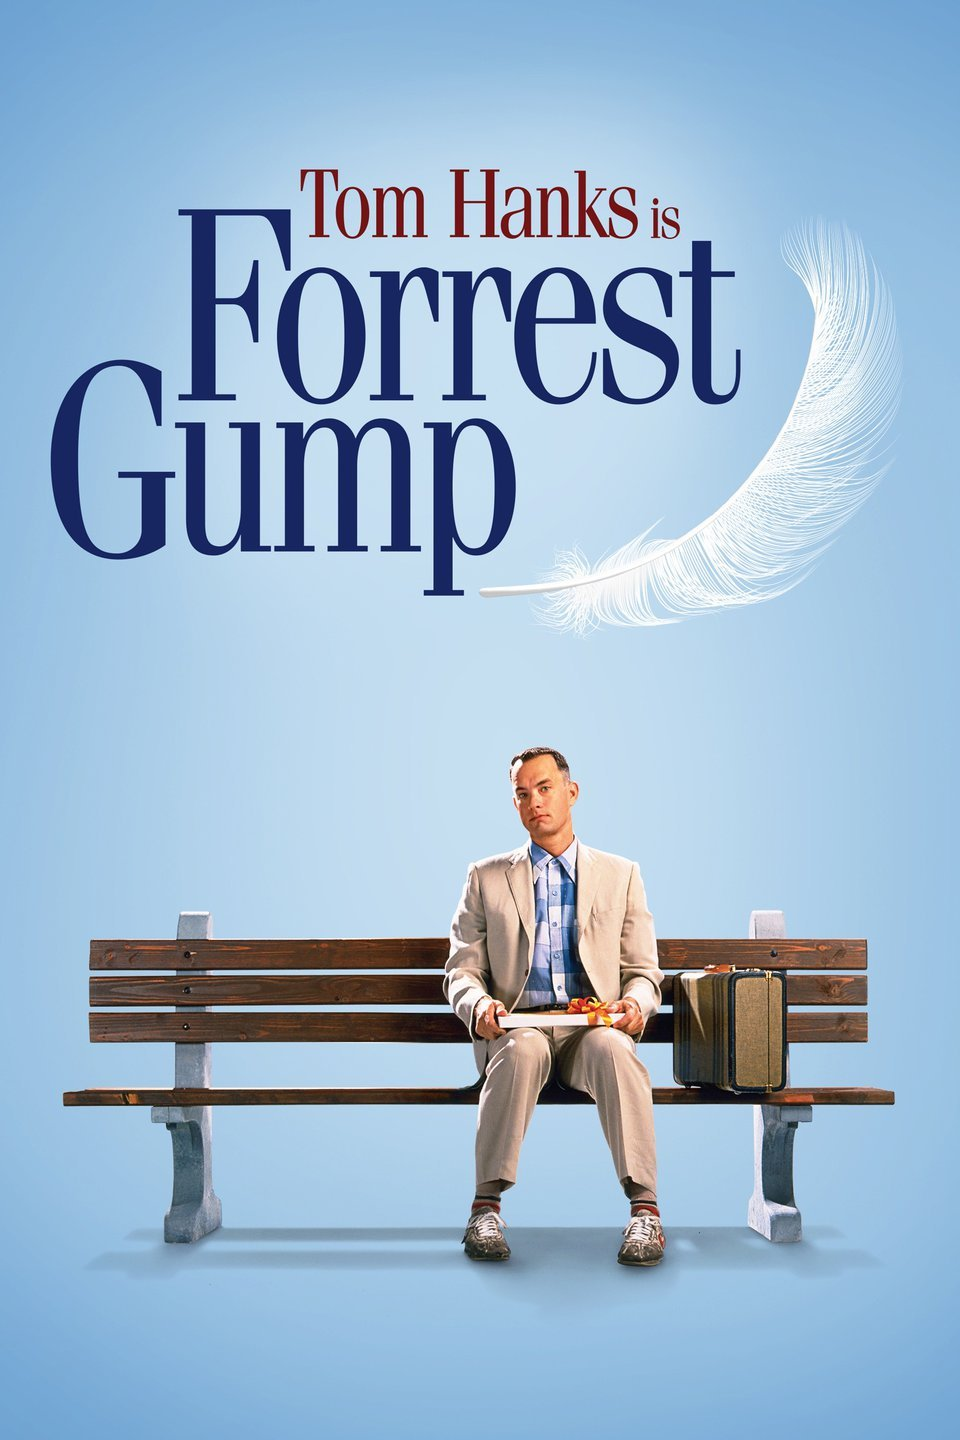 Movie poster for Forrest Gump, showing actor Tom Hanks sitting on a bench wearing a suit and holding a box of chocolates.